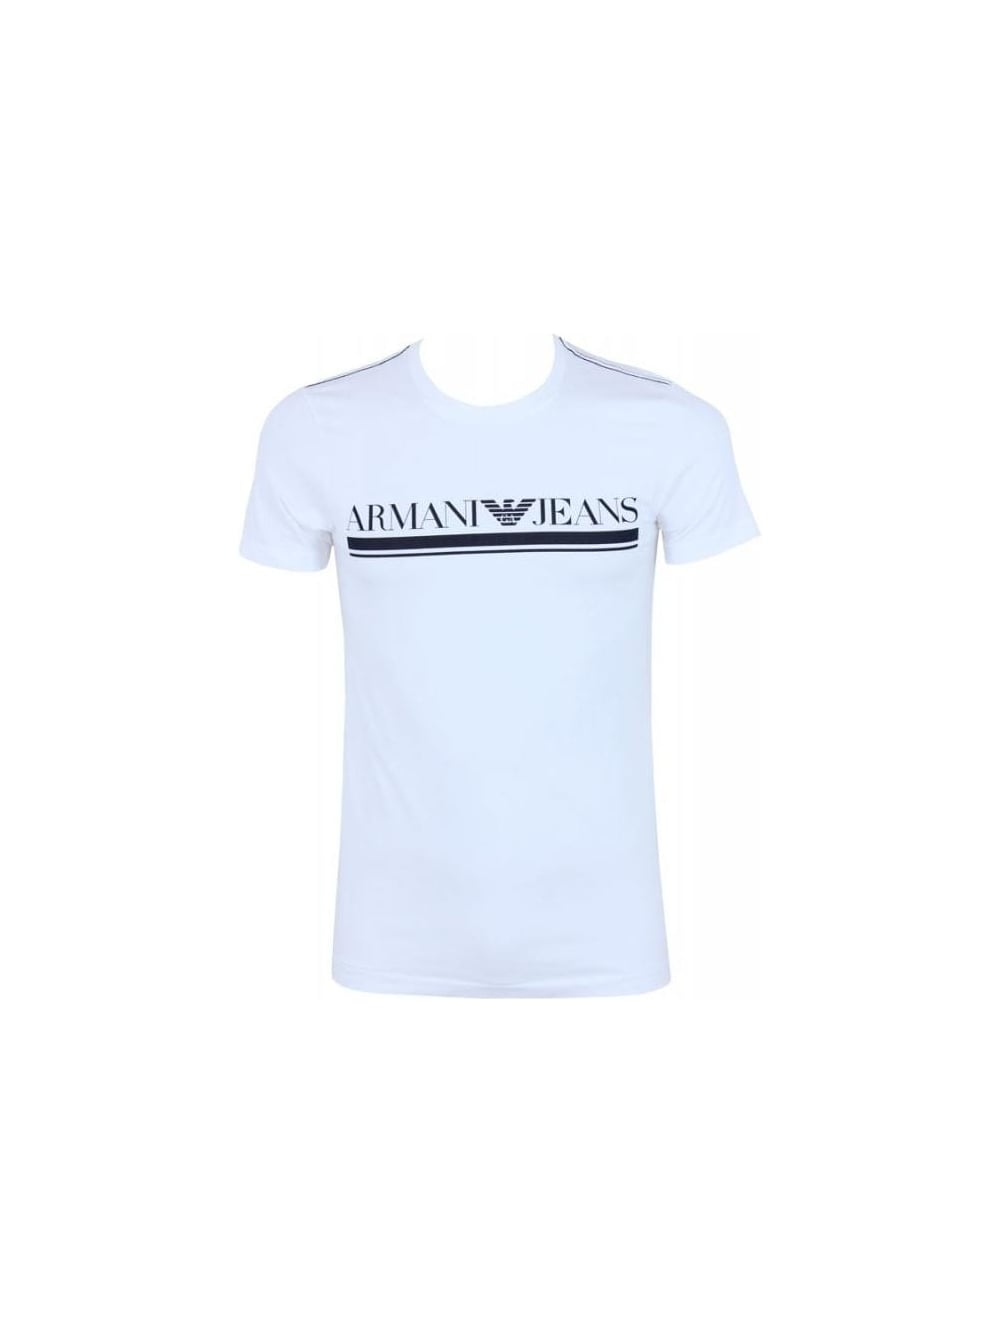 8e7bf2e1 Armani Jeans Underlined AJ Logo T.Shirt in White - Northern Threads